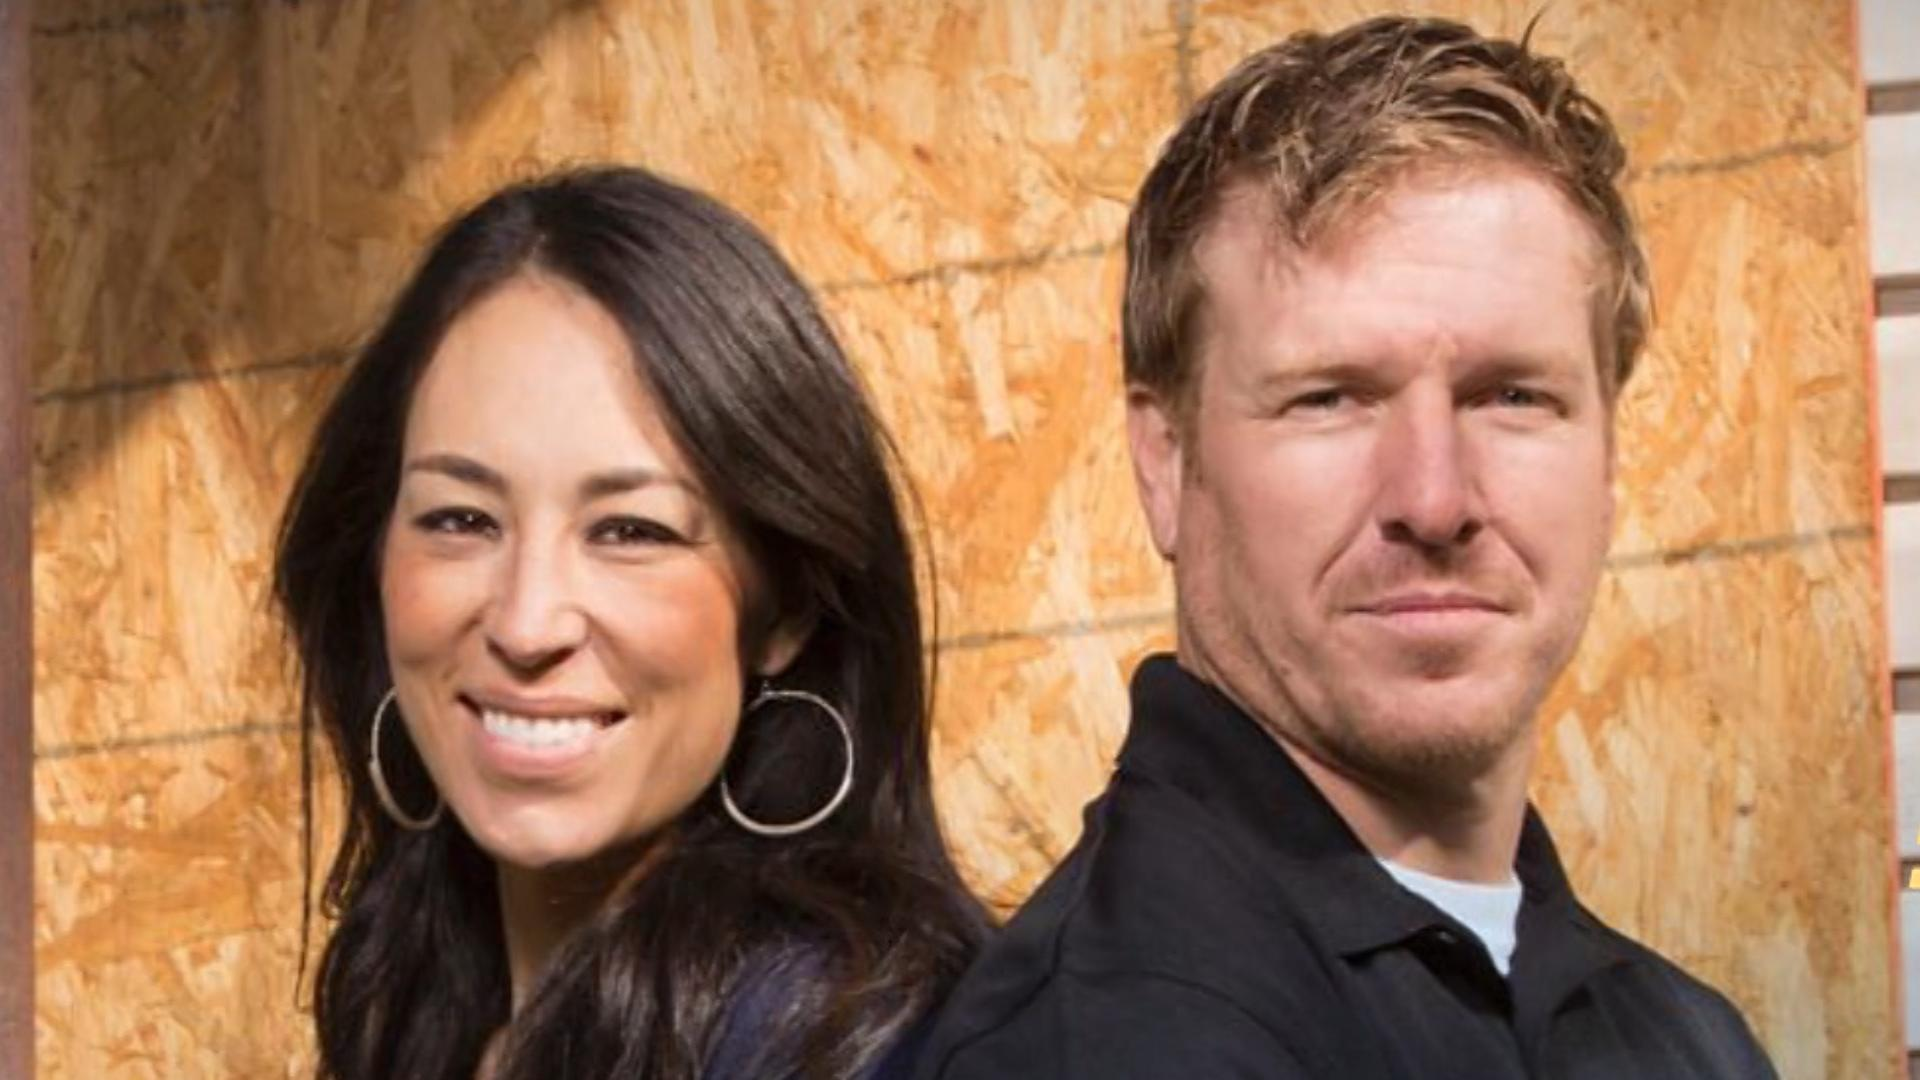 First Look At The New Fixer Upper Spinoff Show Behind The Design